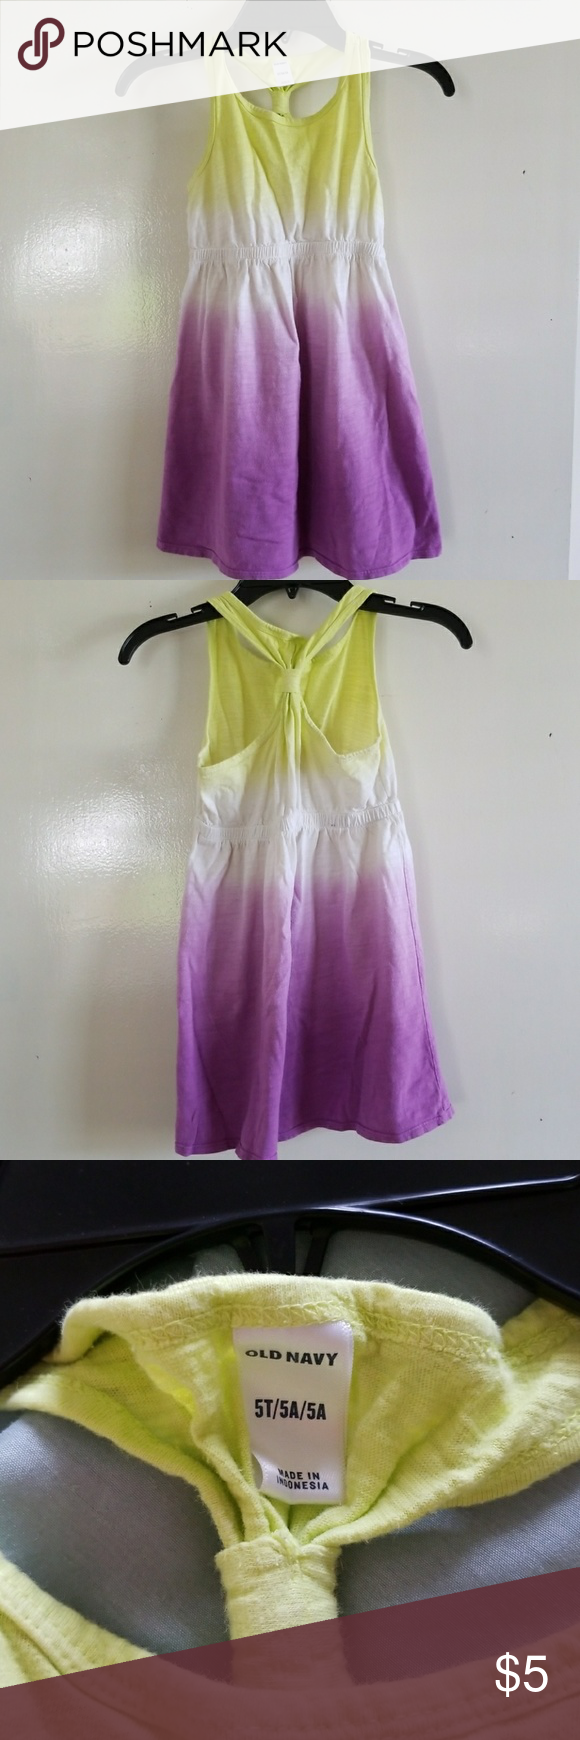 Old Navy Ombre Racer Back Dress Lightweight and bright colors!! Purple, and citron!! Tiny spot on back (pic 4) but otherwise in good condition!! Old Navy Dresses